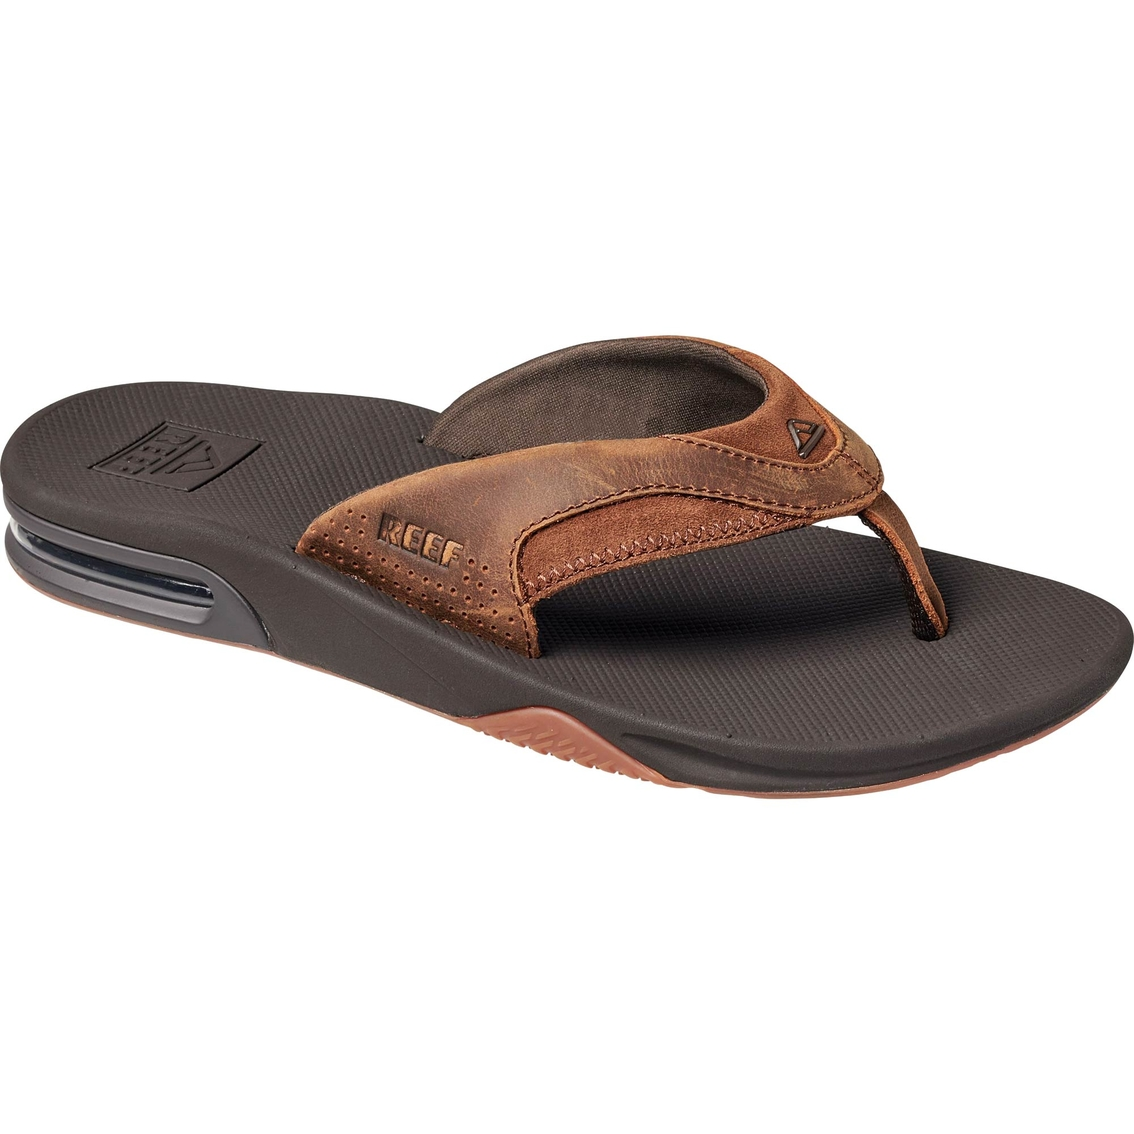 9648e702702f9a Reef Leather Fanning Waterproof Breeze Sandals